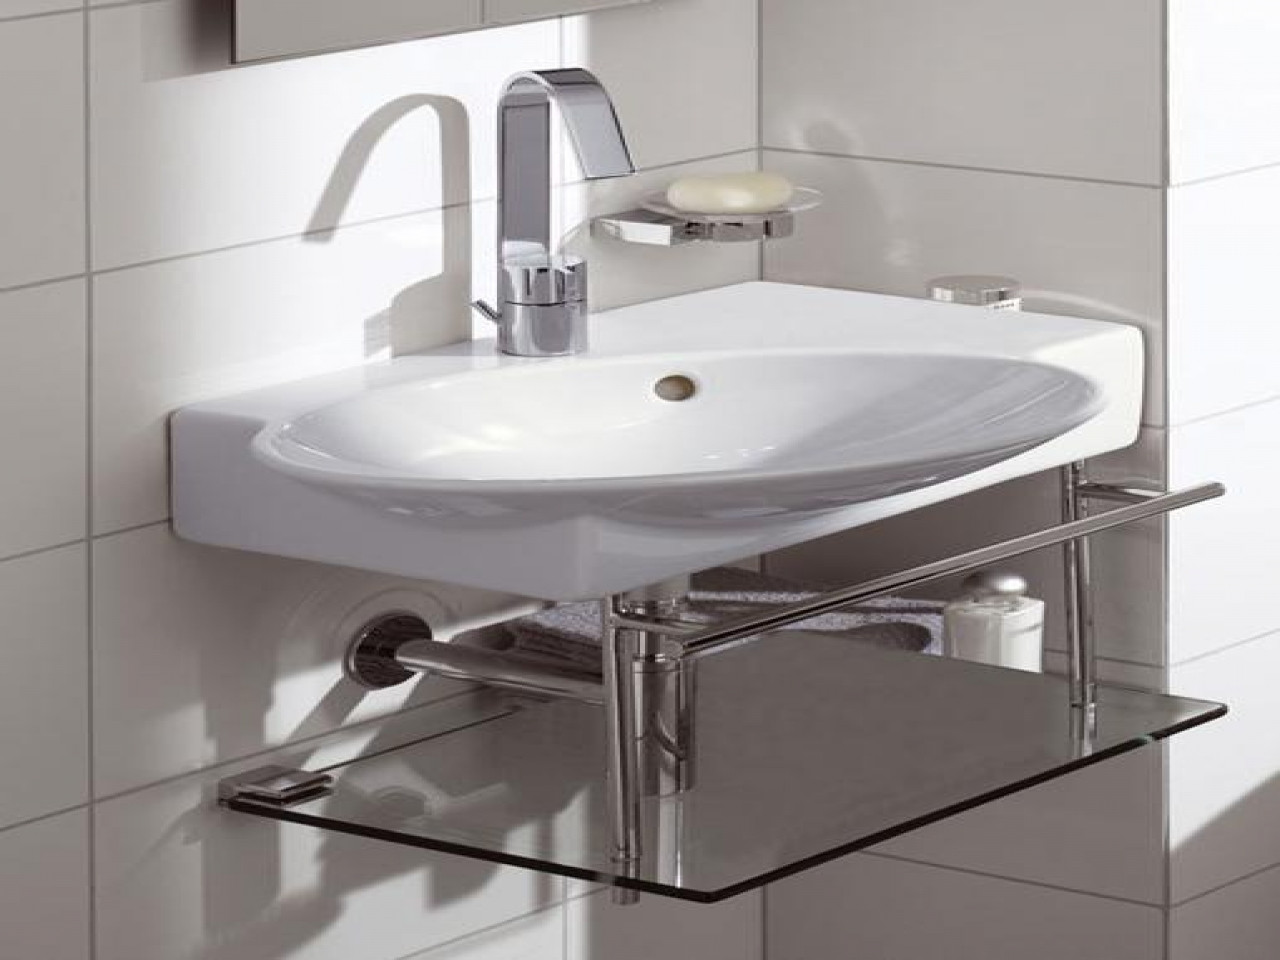 Best ideas about Small Bathroom Sink . Save or Pin Pedestal bathroom sinks small corner sink with vanity Now.